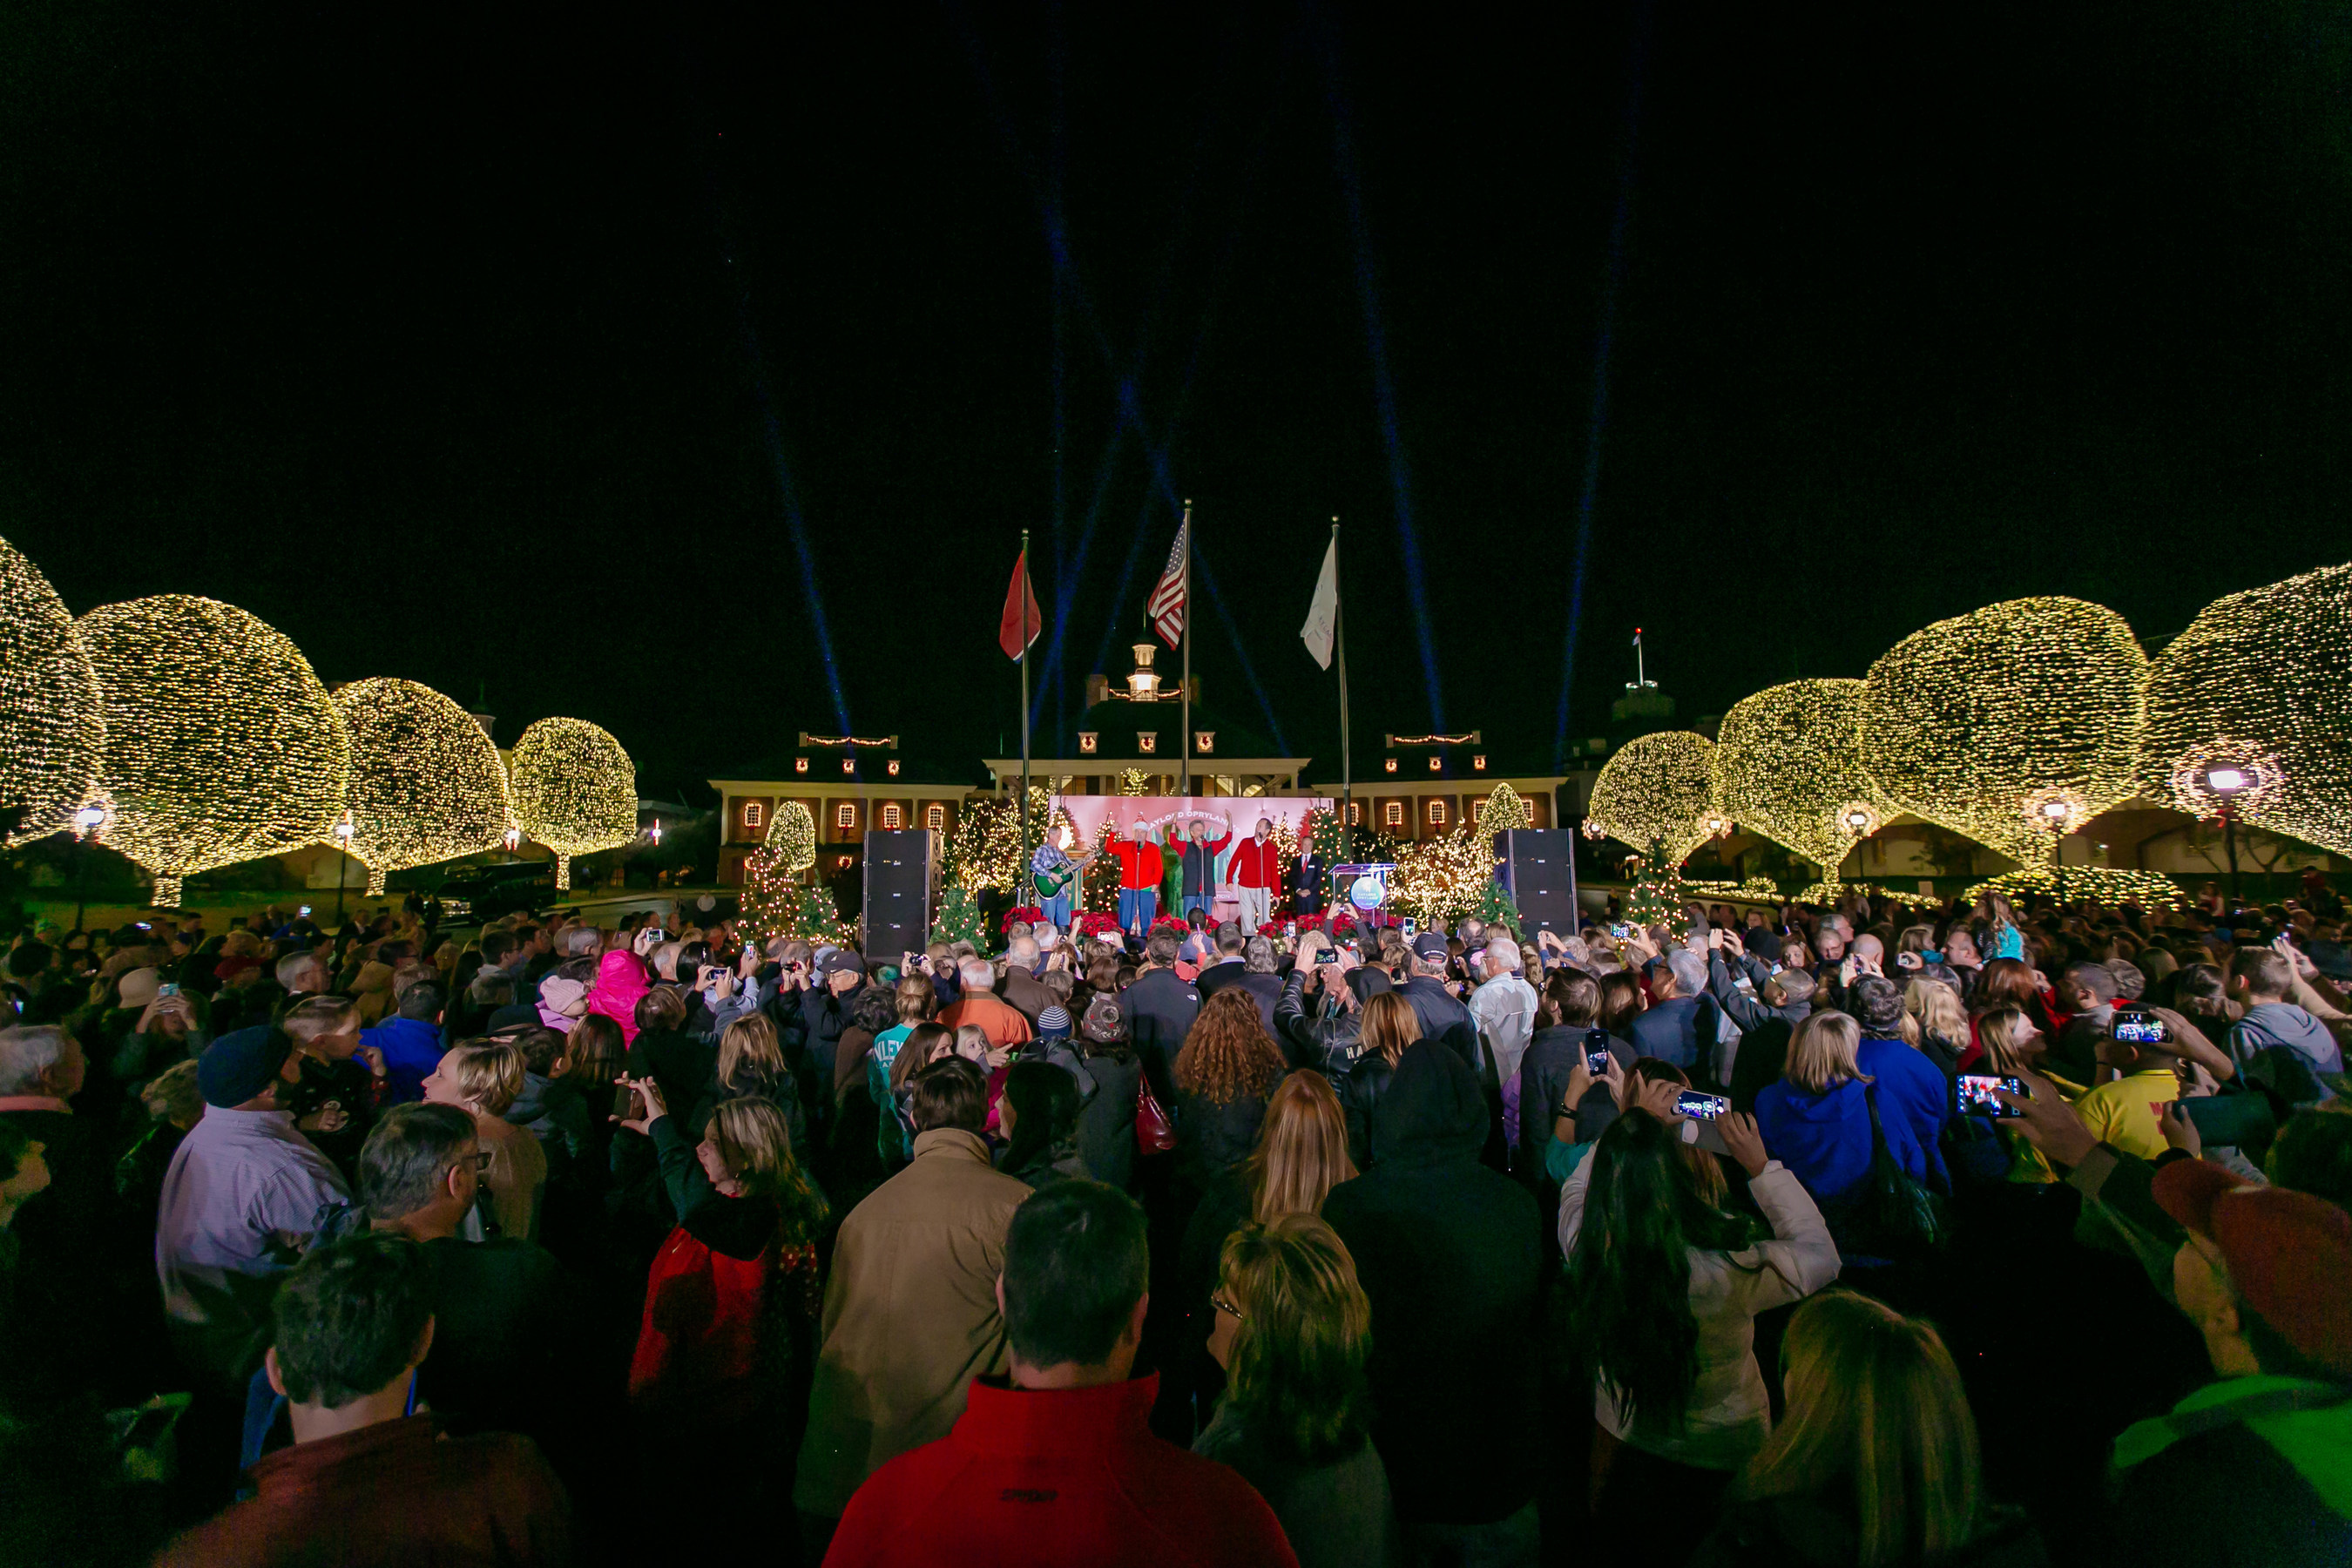 With the flip of a switch, Nashville's Gaylord Opryland Resort is aglow with 2.3 million holiday lights for its 32nd annual A Country Christmas celebration.